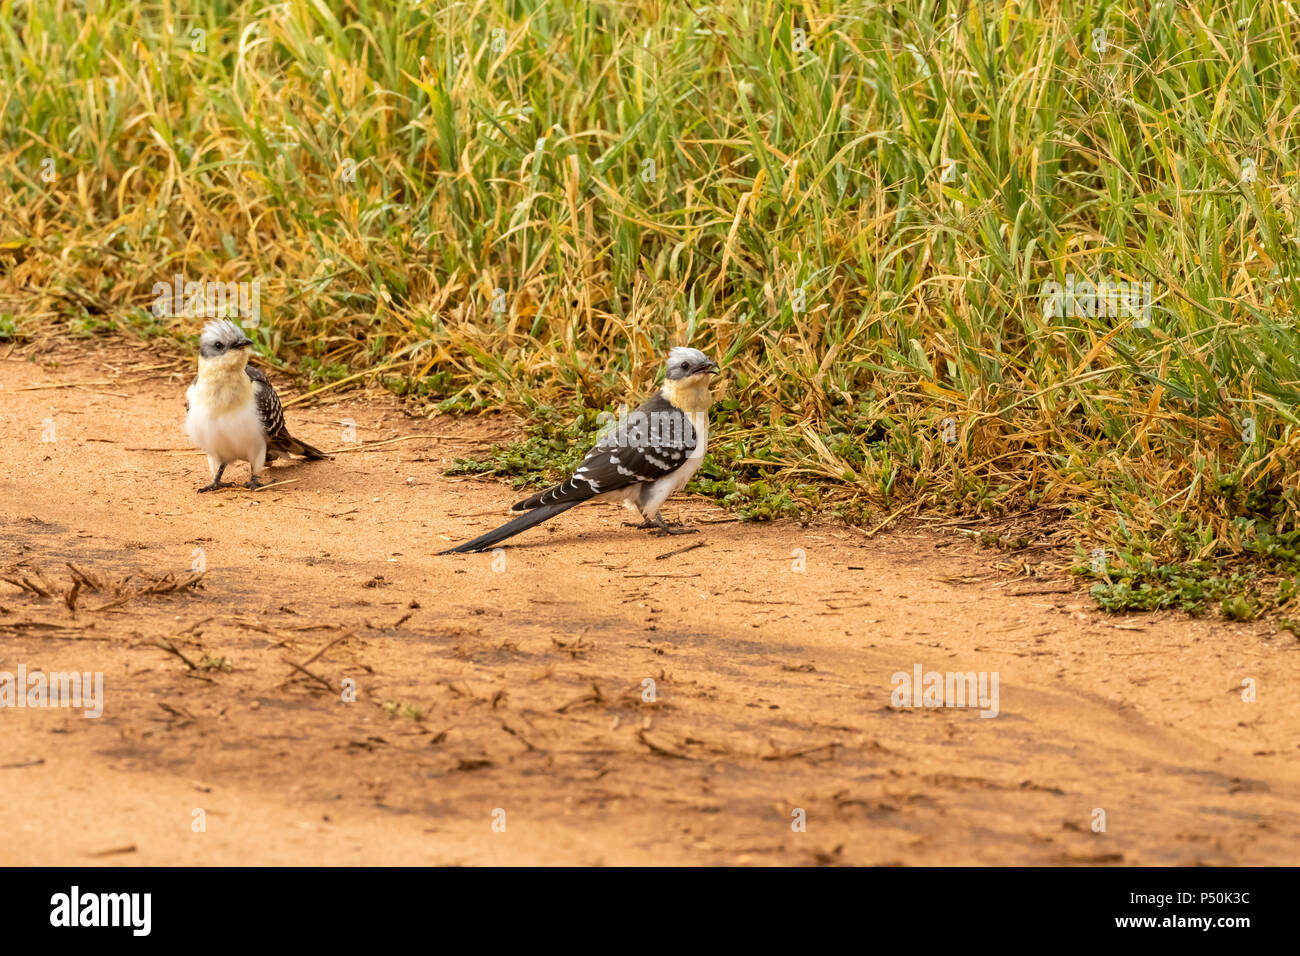 Great Spotted Cuckoo (Clamator glandarius) pair on the savannah in Tarangire National Park, Tanzania - Stock Image